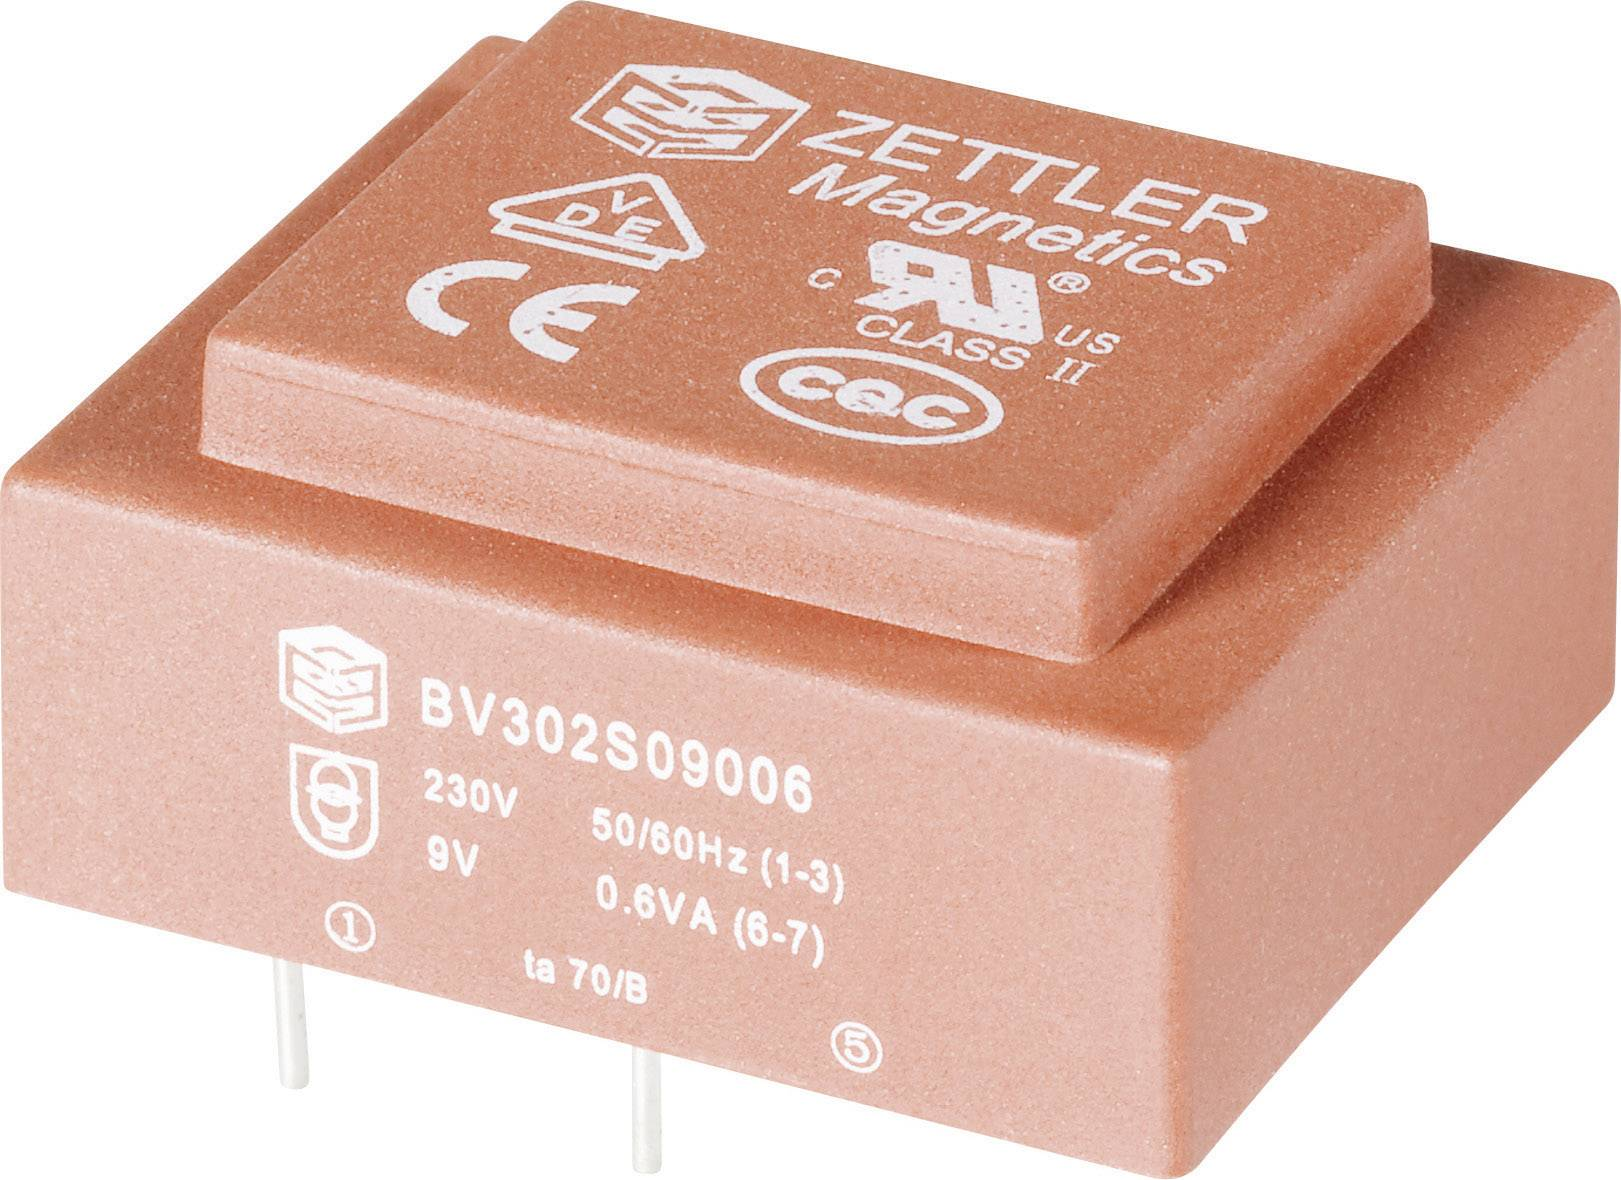 Transformátor do DPS Zettler Magnetics El30, 230 V/6 V, 100 mA, 1,5 VA